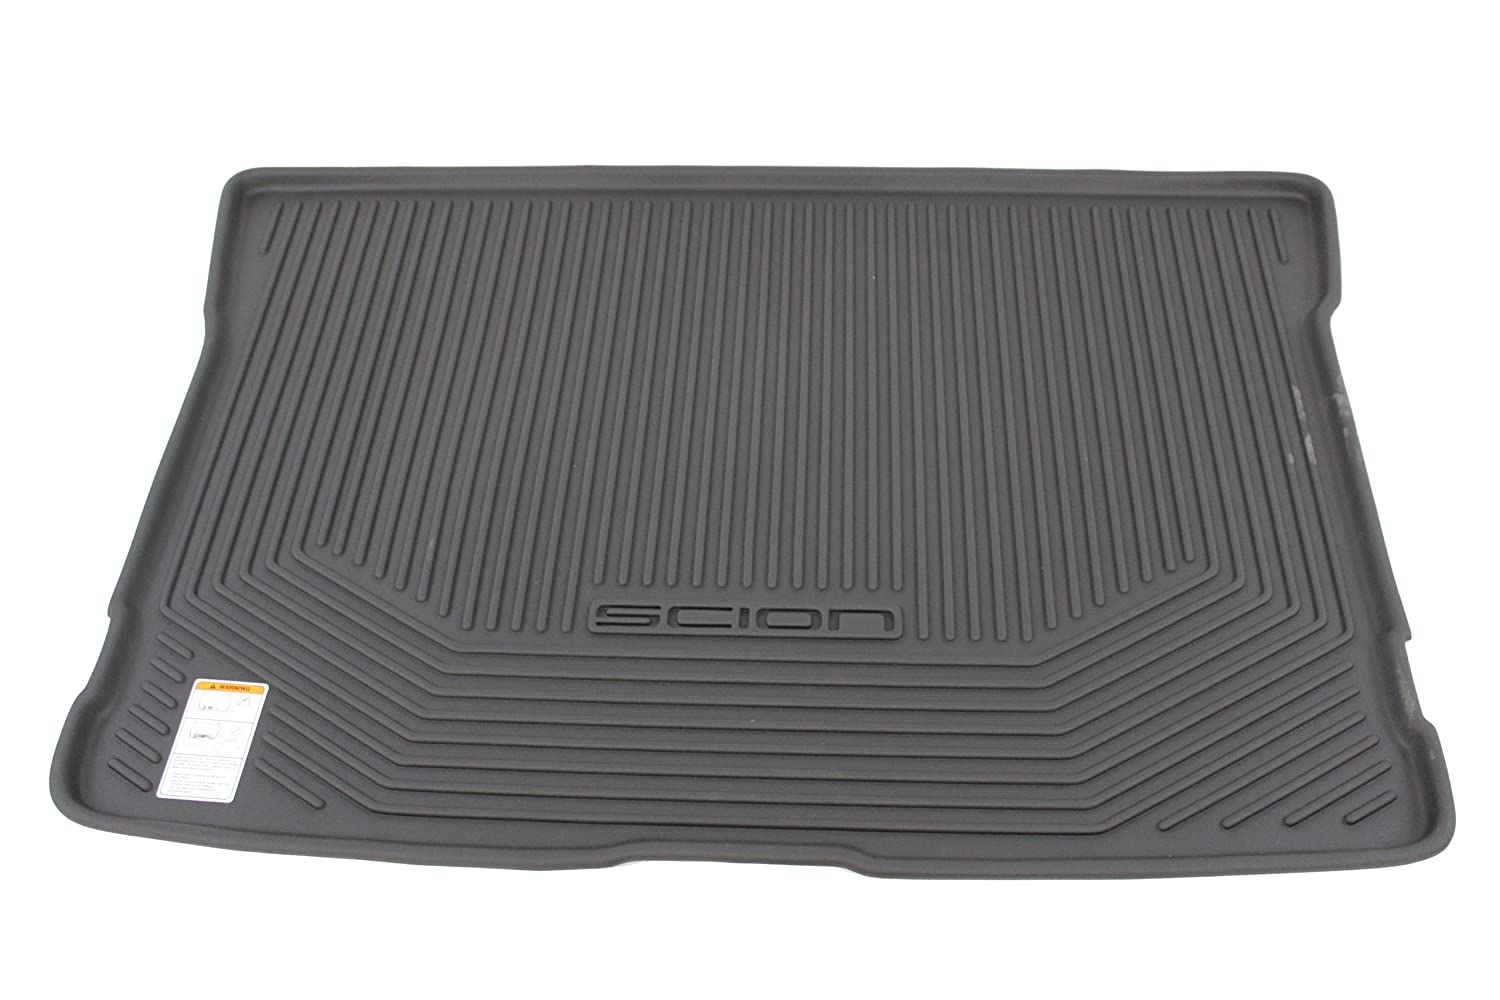 2014 scion xb weathertech floor mats - Amazon Com Genuine Scion Accessories Pt218 52110 Cargo Tray Automotive